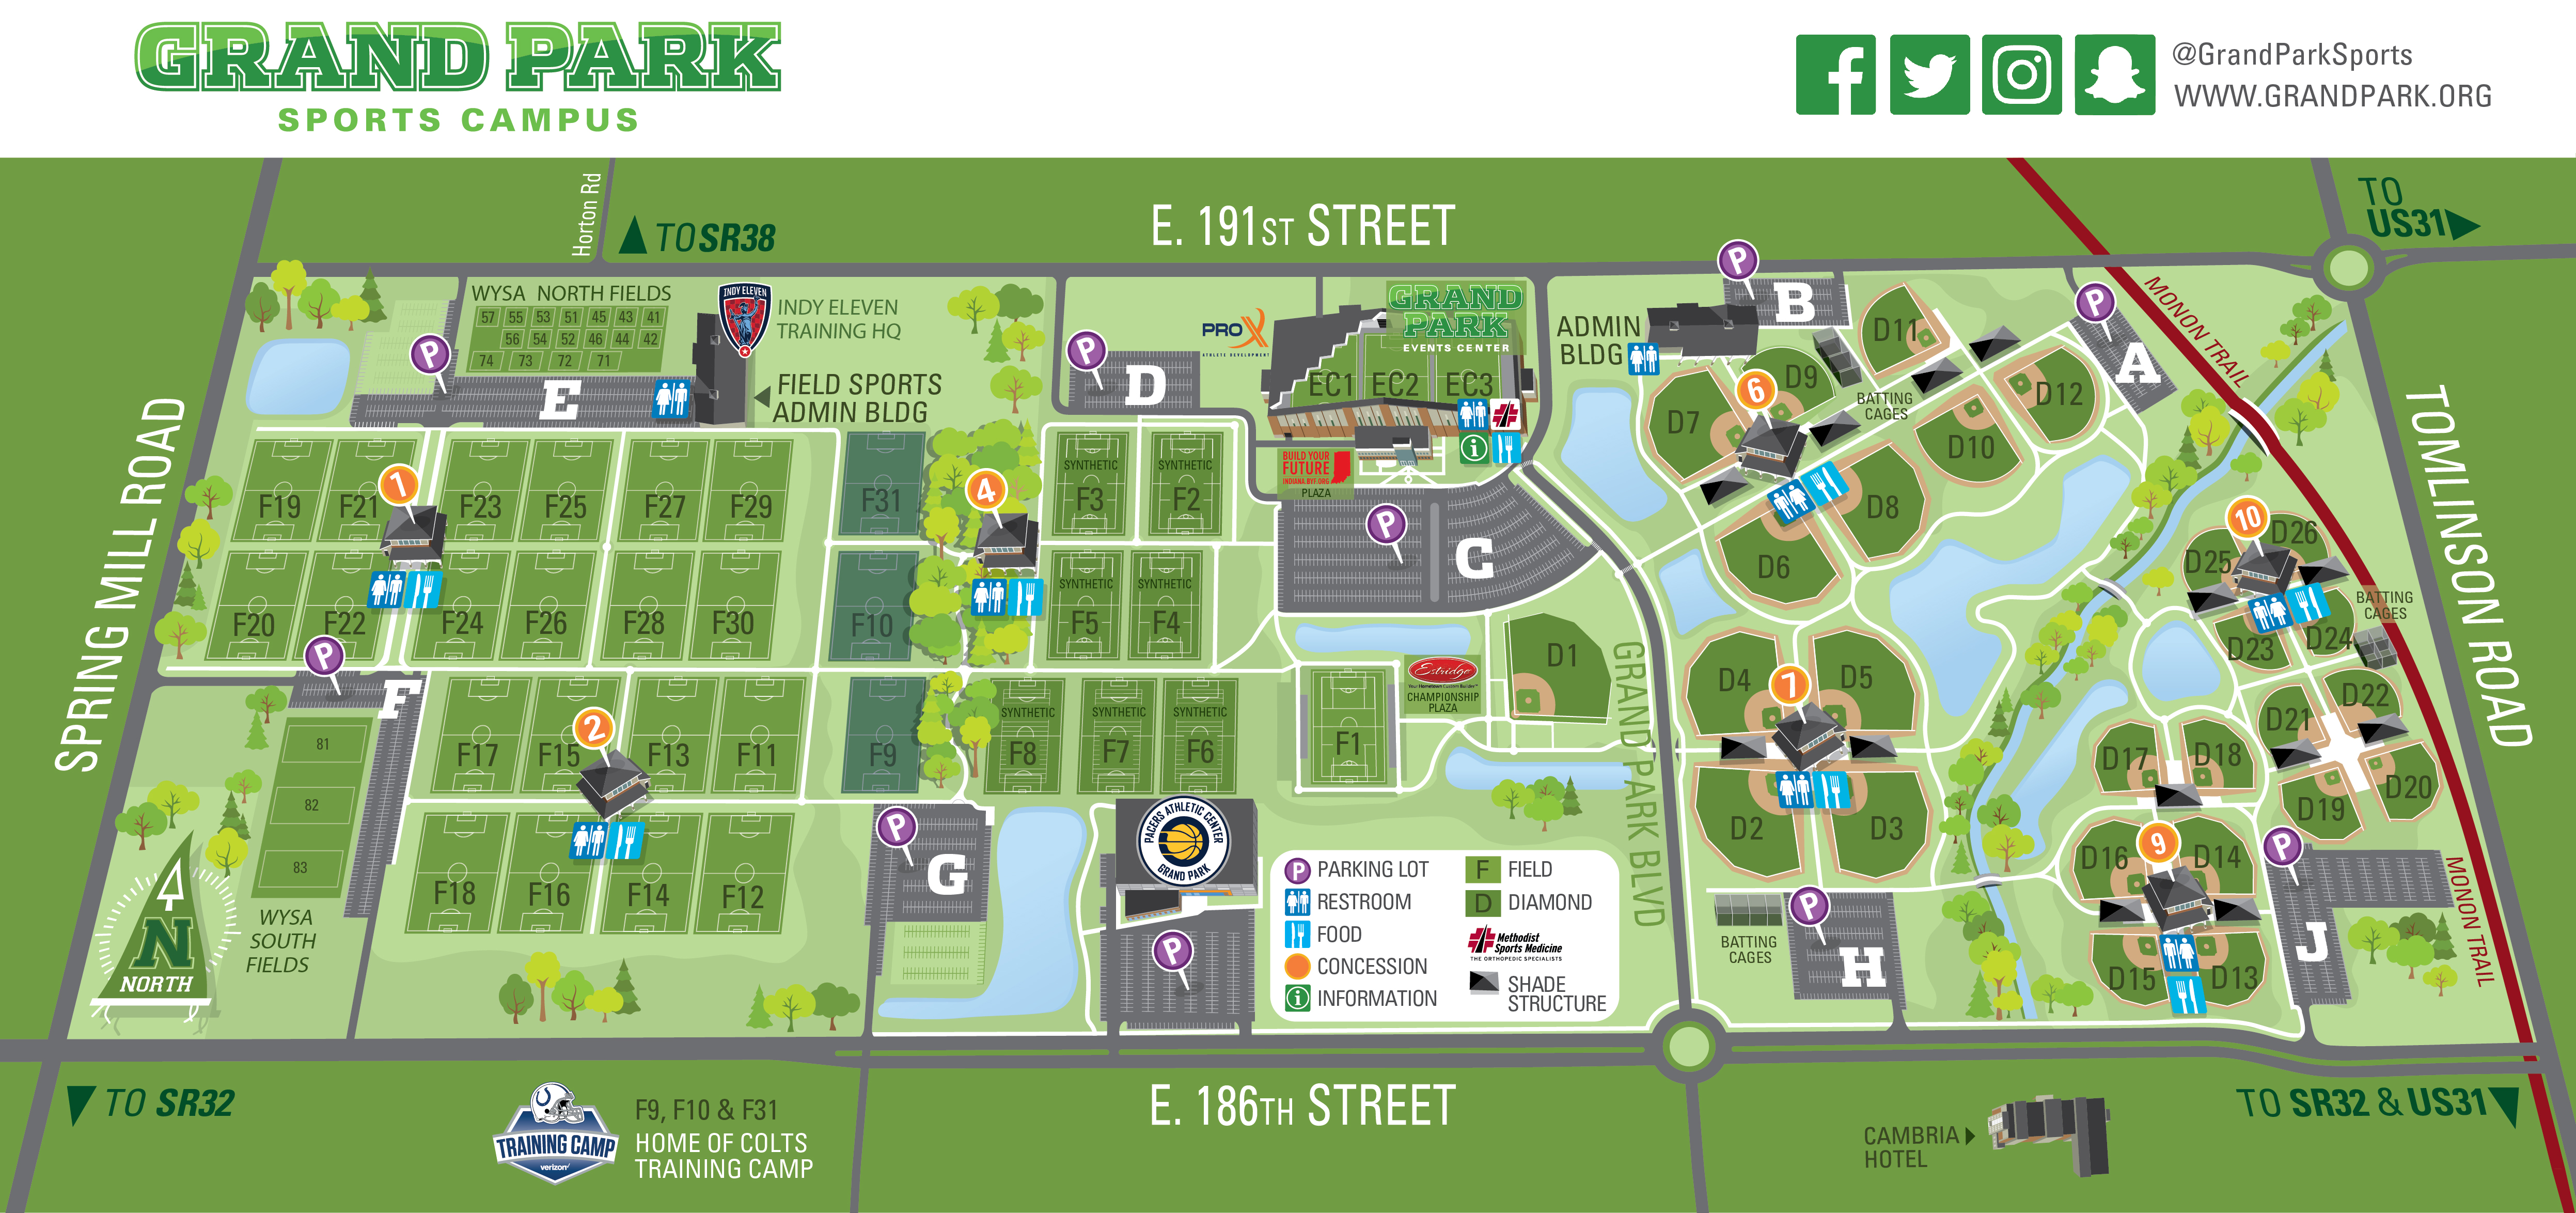 Grand Park Map Grand Park in Westfield, IN | Find Sports Events & Park Info